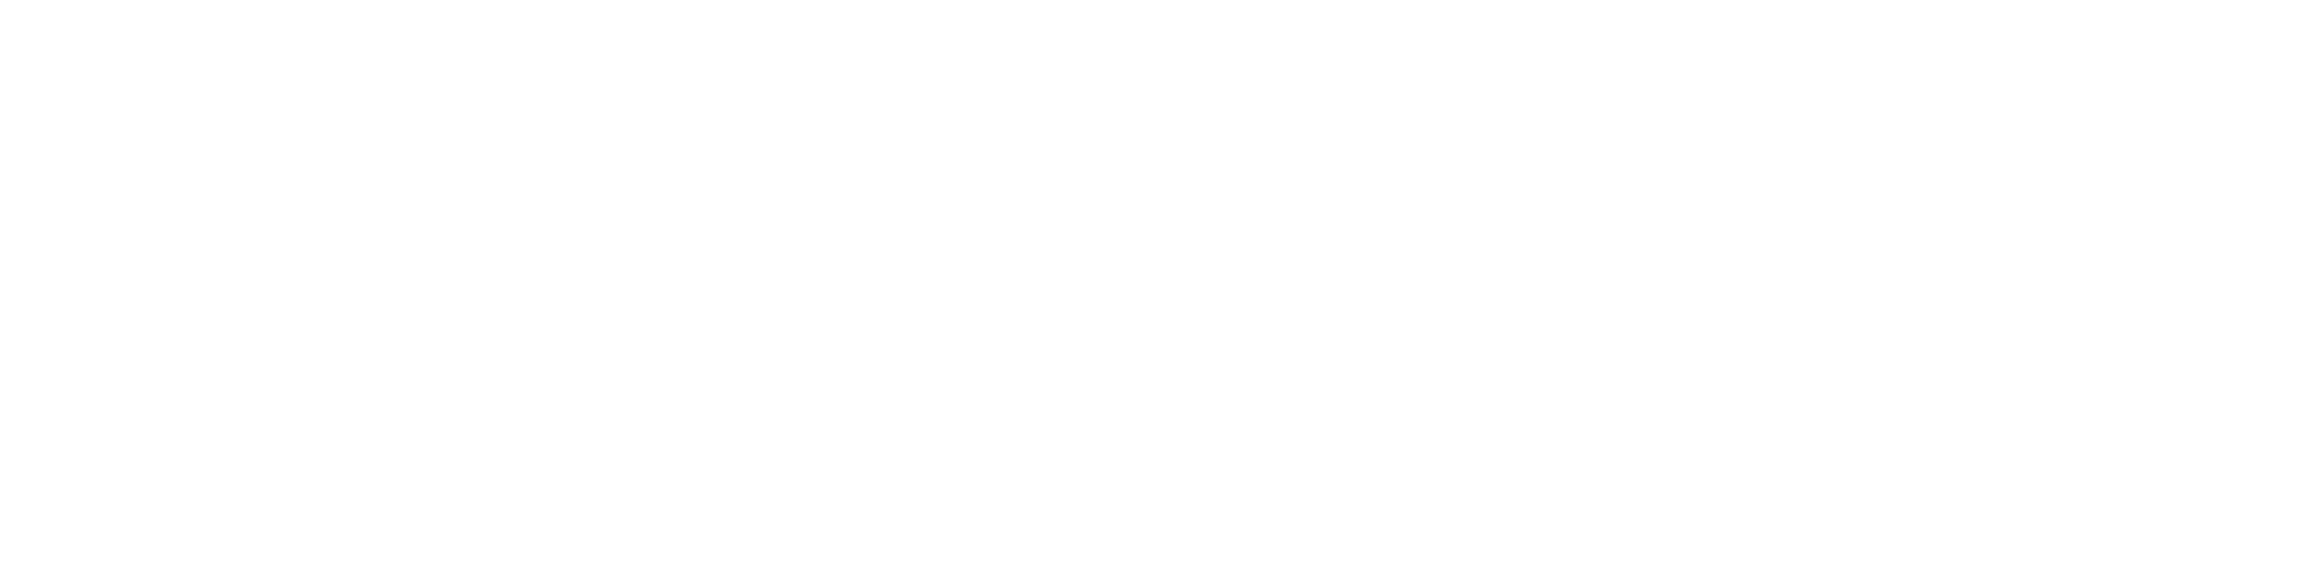 CX Exchange for Travel & Hospitality UK